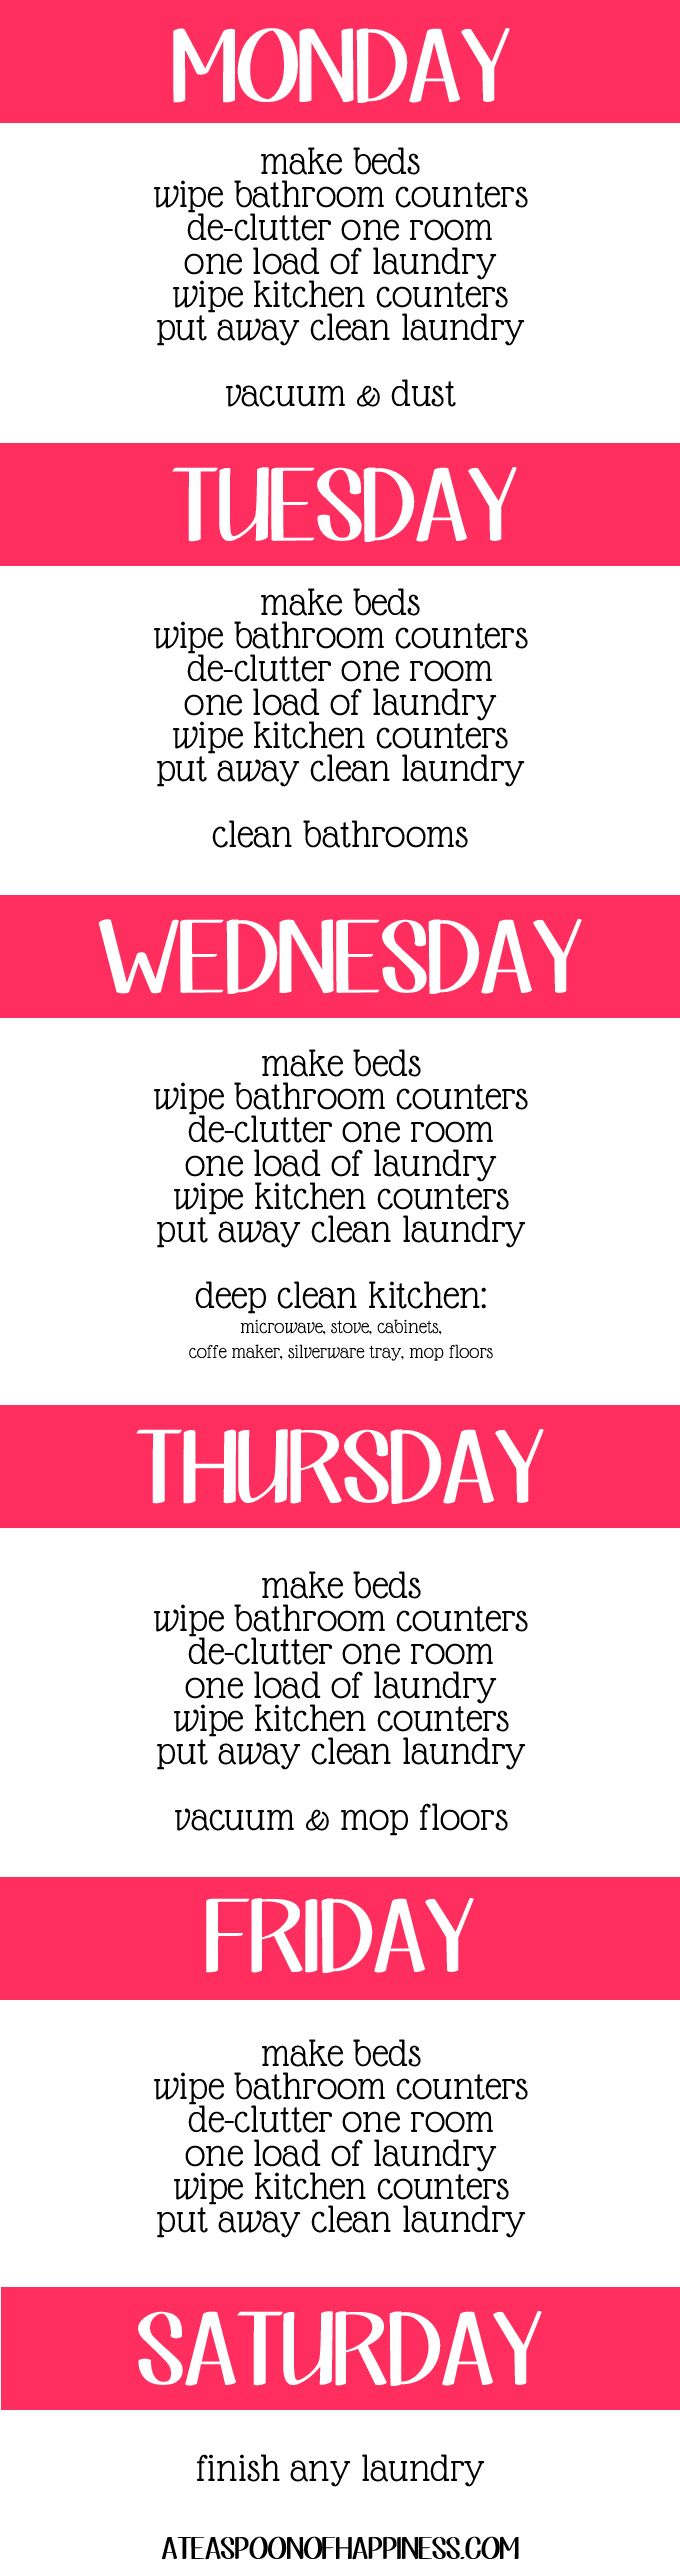 Daily Cleaning Schedule - The Pinterest Challenge Part 2 - A Teaspoon of Happiness: Cleaning Organization, Daily Cleaning Schedules, Cleaning Schedule I, Cleaning Lists, Cleaning Ideas, Cleaning Organizing, Clean House, Cleaning Tips